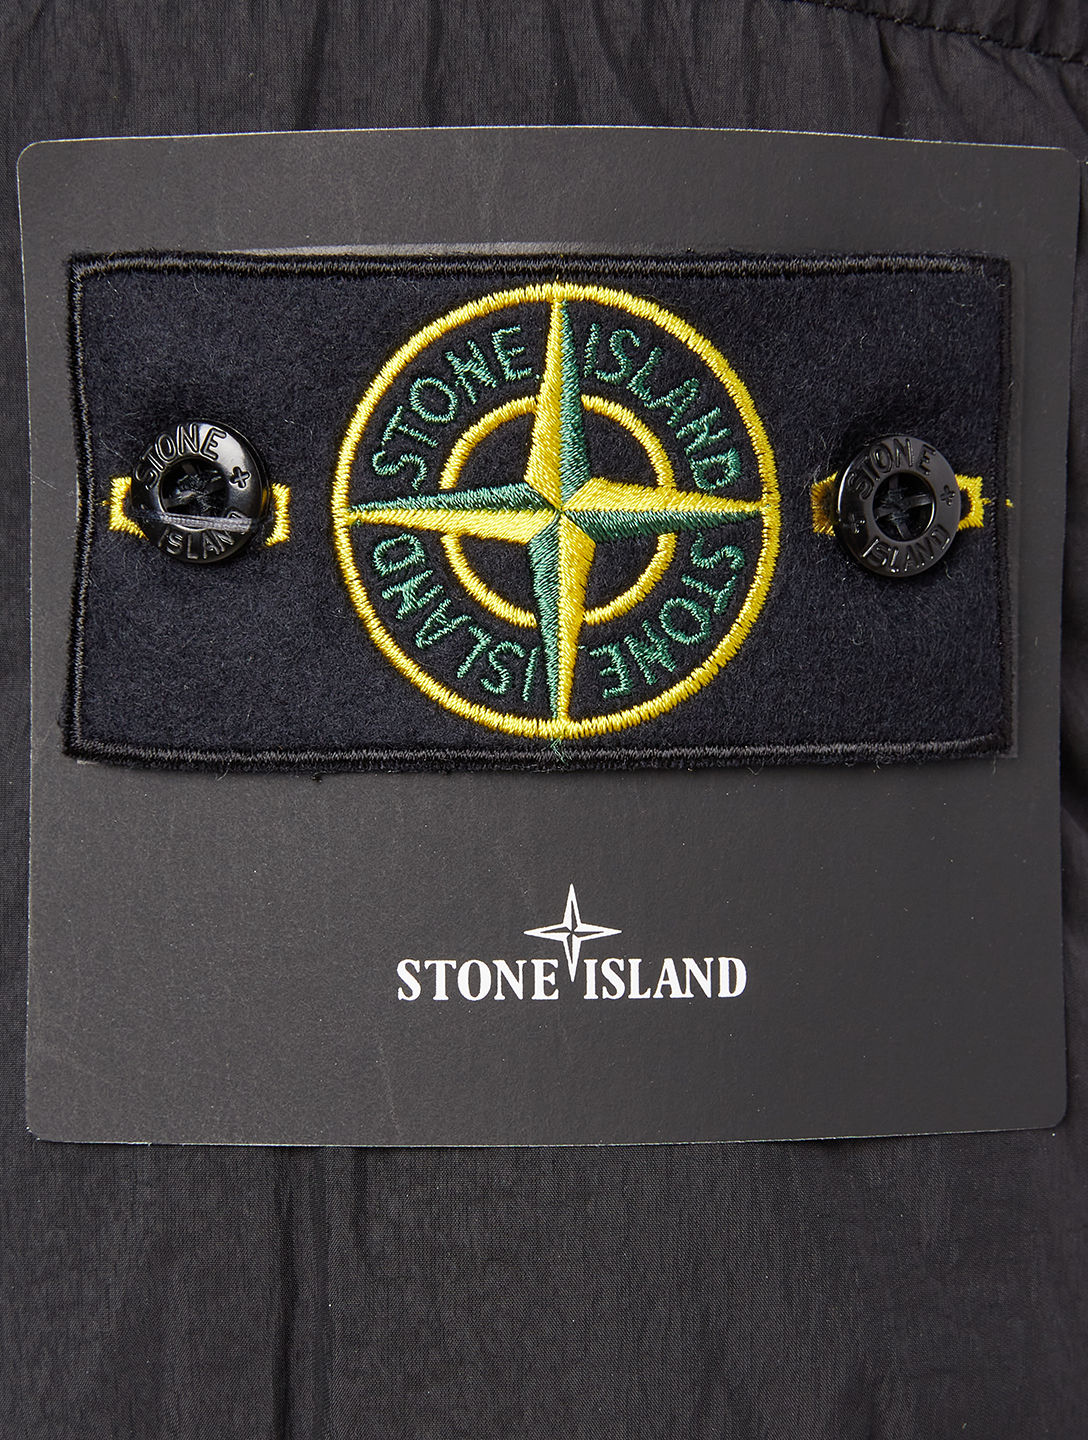 STONE ISLAND Garment Dyed Crinkle Down Jacket Men's Black